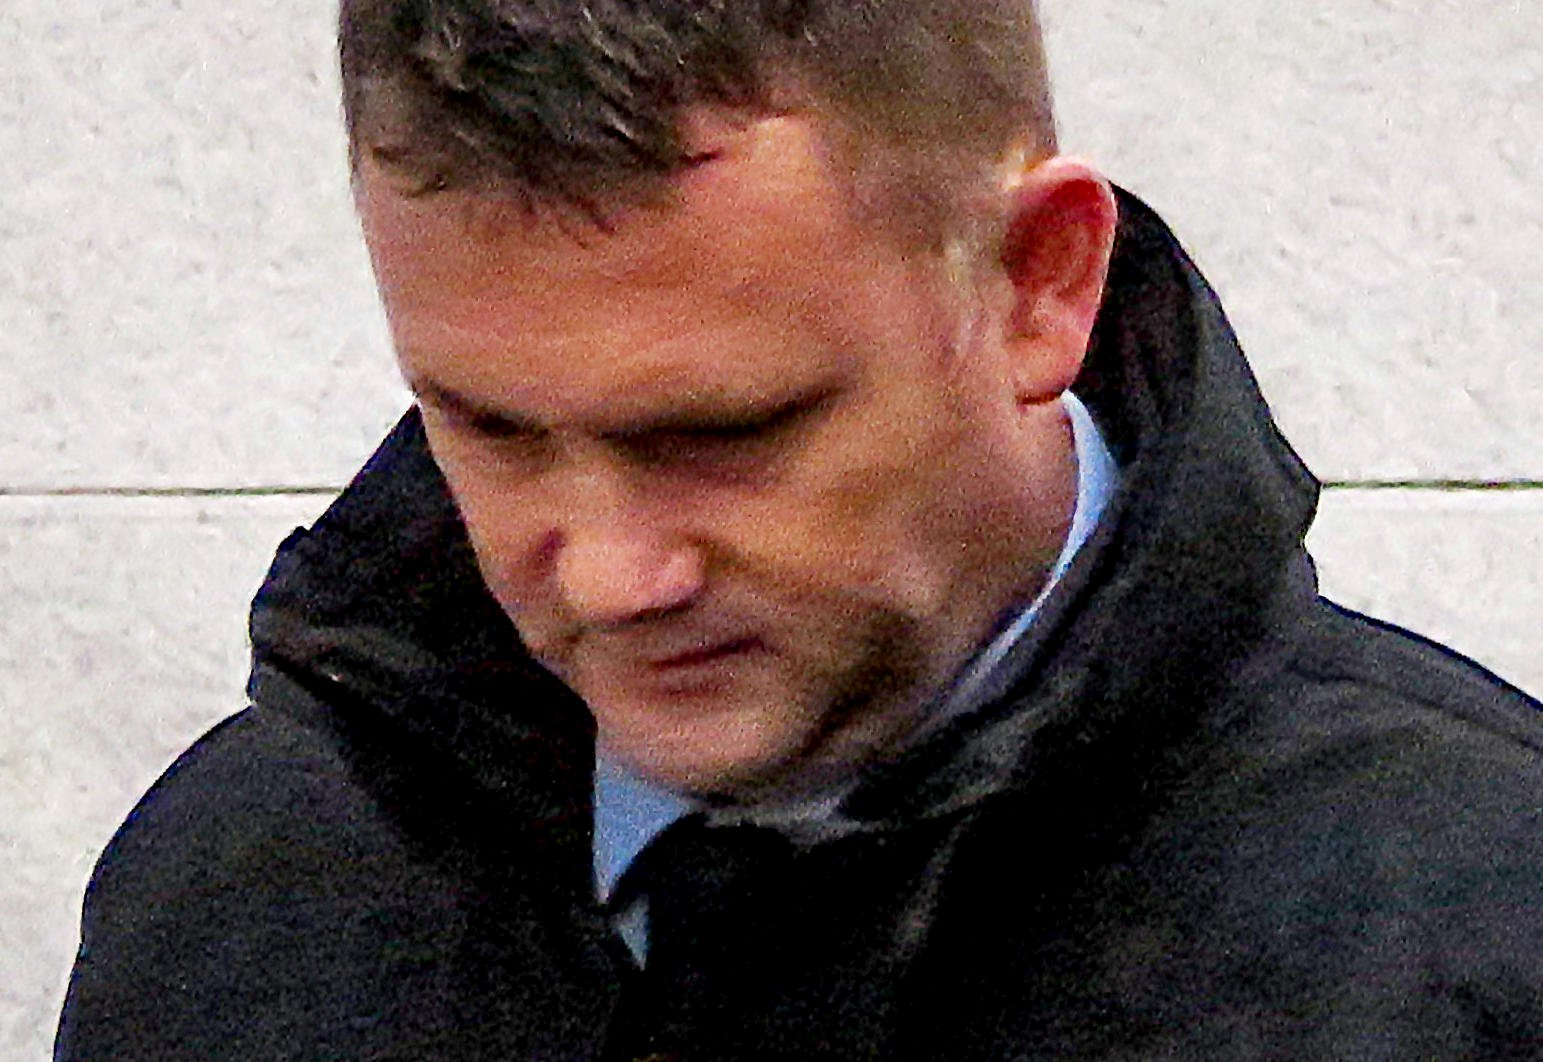 Captain Dale Jackson. A disgraced Army officer still denies molesting a woman who was so drunk she was ???like a puppet whose strings were broken??? ??? despite his attack being captured by a CCTV camera. See SWNS story SWMDgrope. Captain Dale Jackson, who blames his incapable victim for what happened, is to be discharged from the Royal Regiment of Fusiliers after 27 years??? service as a result of the incident. But a judge at Warwick Crown Court rejected a suggestion by Jackson???s barrister that the ???significant punishment??? of the loss of his career could save him from prison. Jackson (44) of Oakwood Close, Atherstone, who had been found guilty of sexual assault following a trial last month, was jailed for 15 months and ordered to register as a sex offender for 10 years.